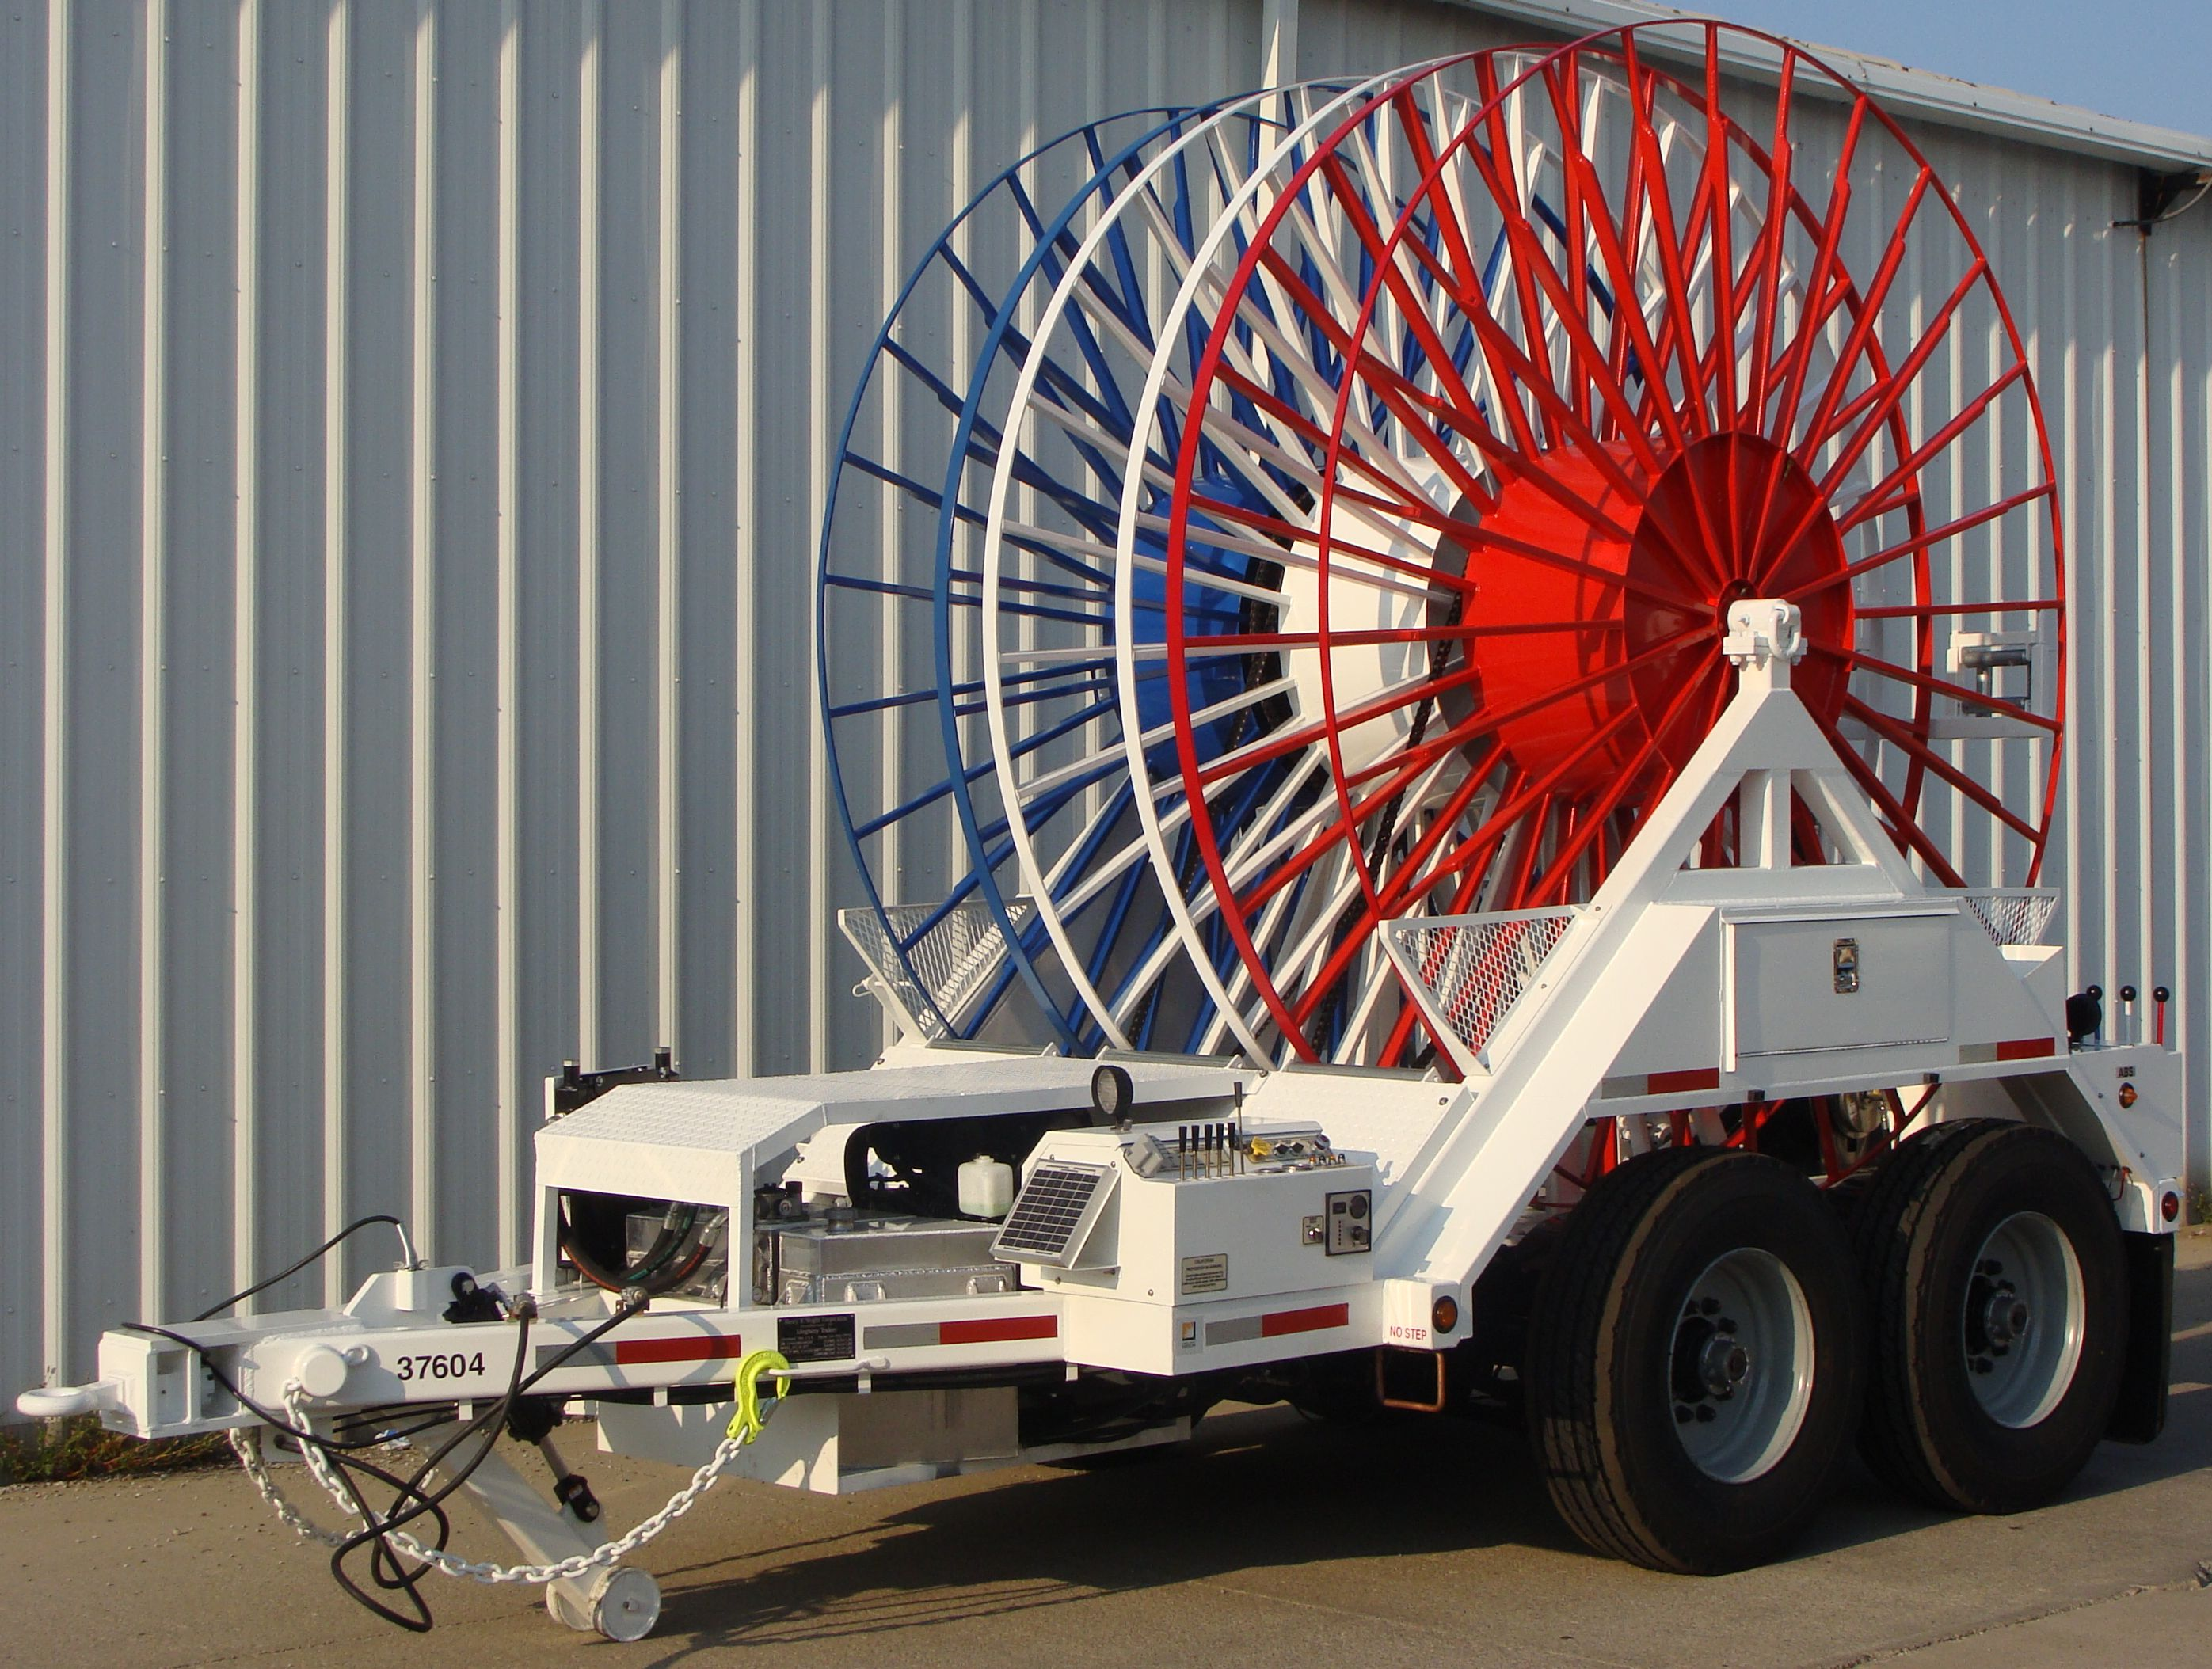 Hydraulic 3-reel Trailer for Stringing Underground Transmission Cable, Self-Driving